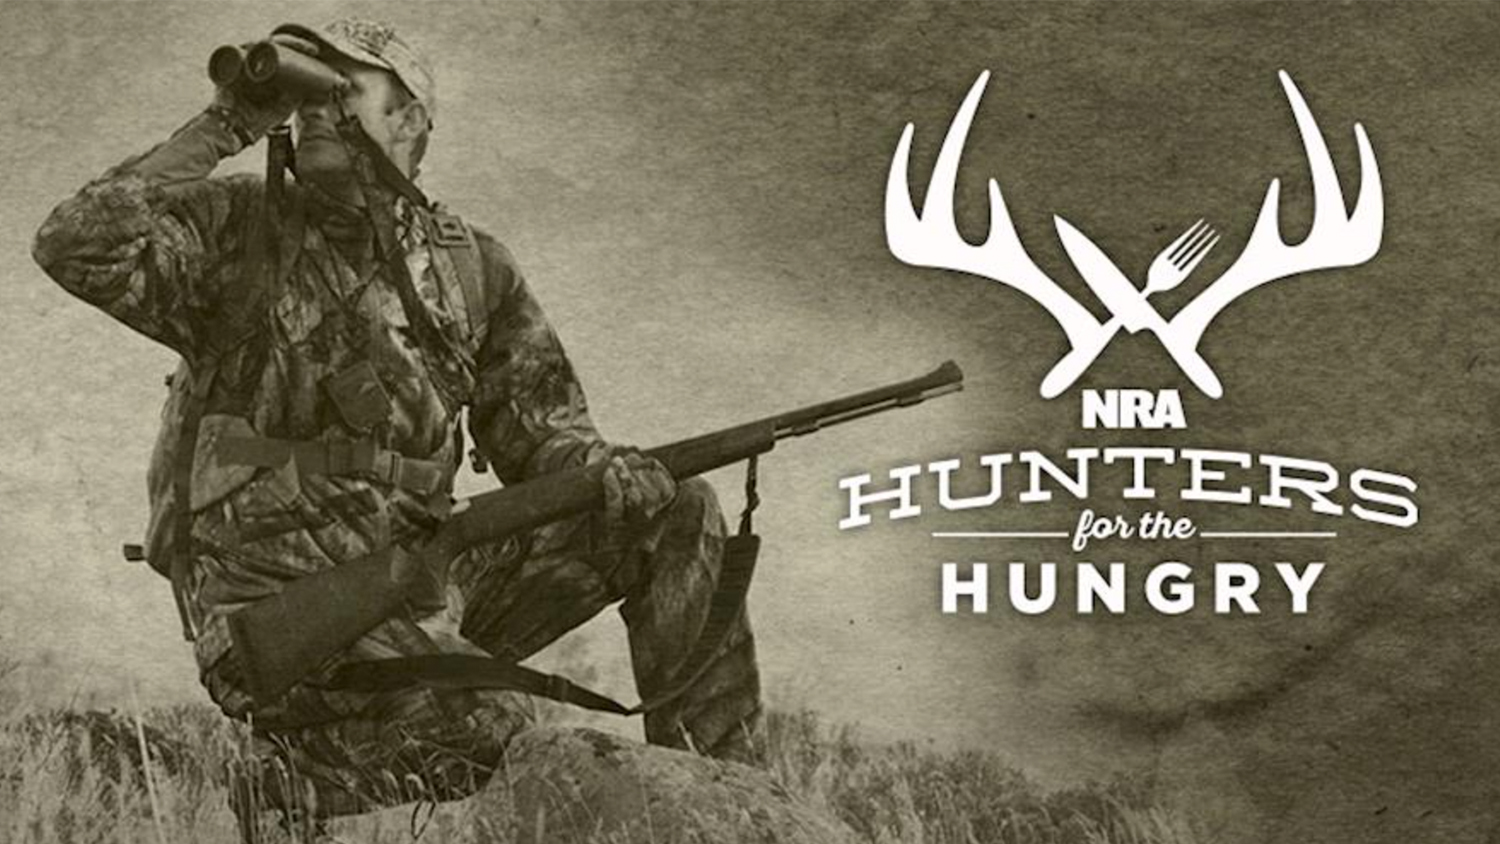 INFOGRAPHIC: Hunters for the Hungry